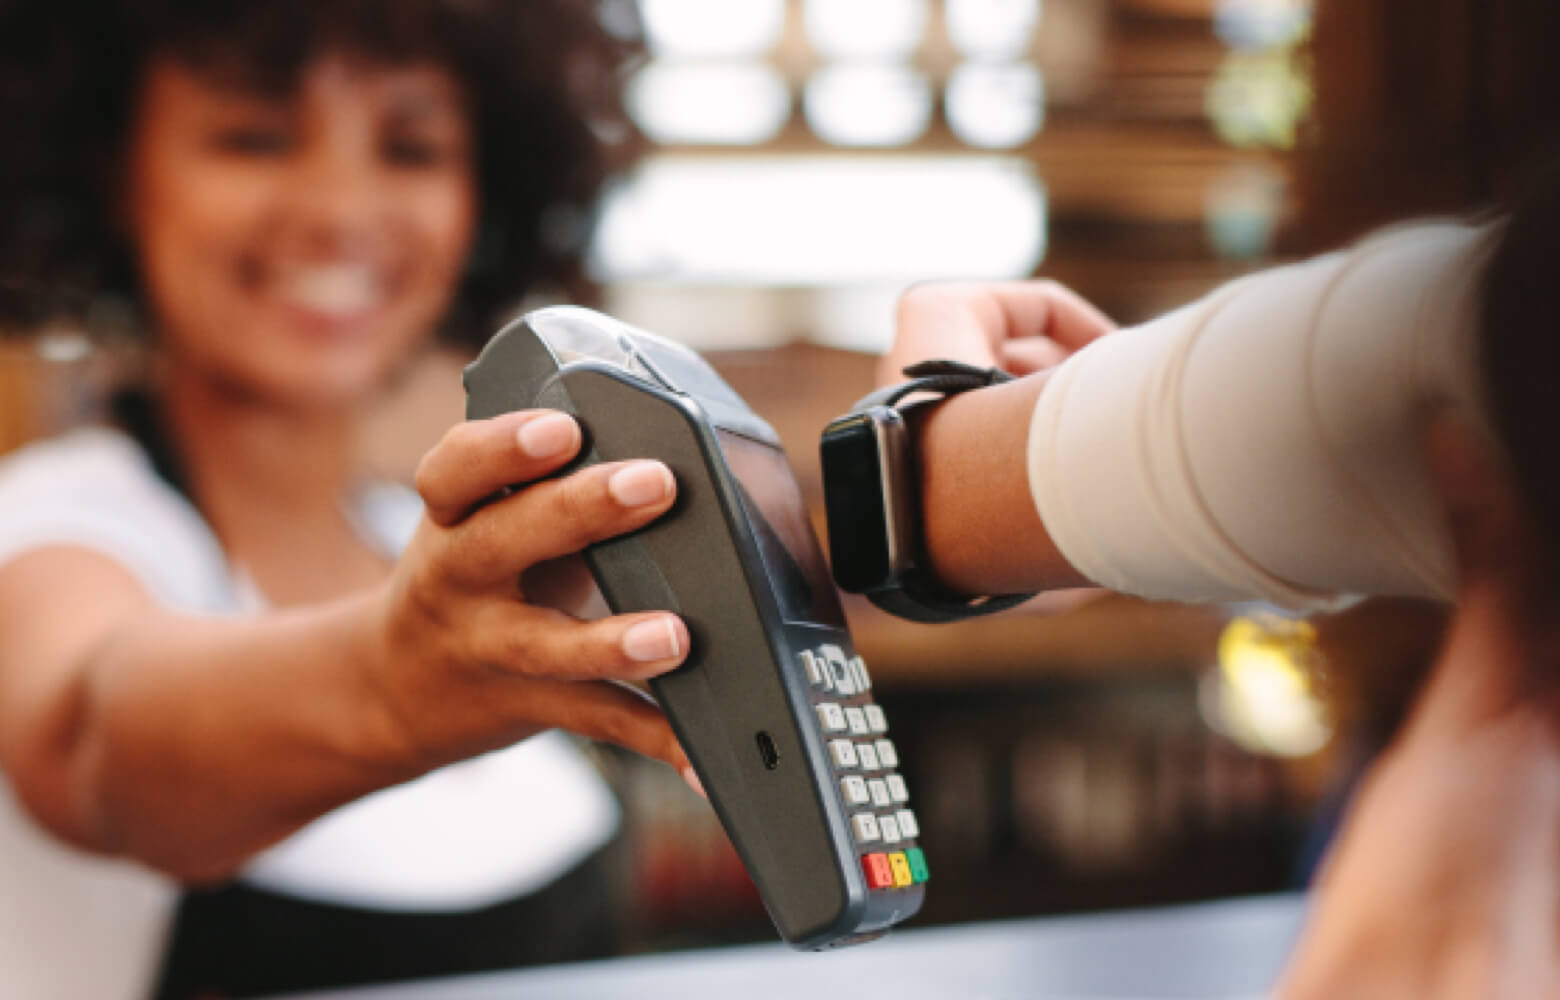 Store clerk holding payment terminal for a woman to tap with her smart watch for payment.